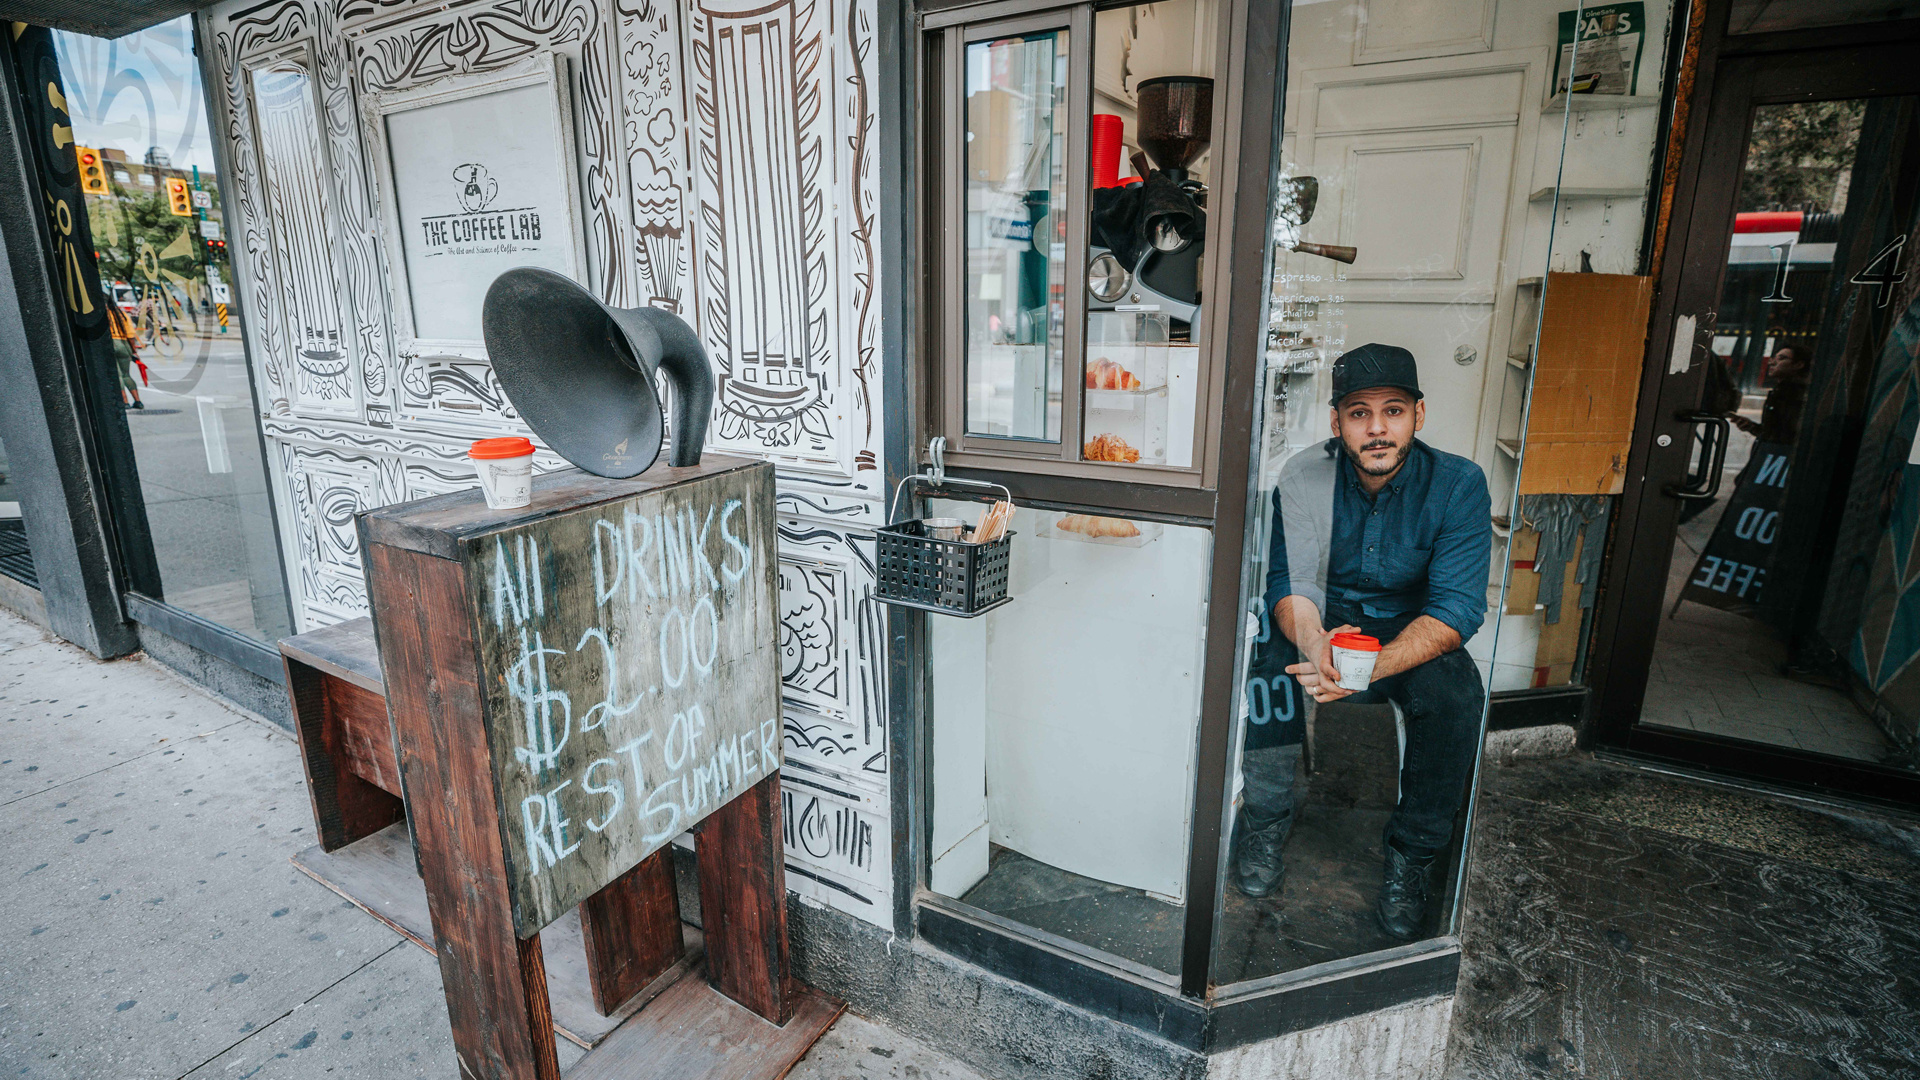 Toronto's smallest bars and restaurants